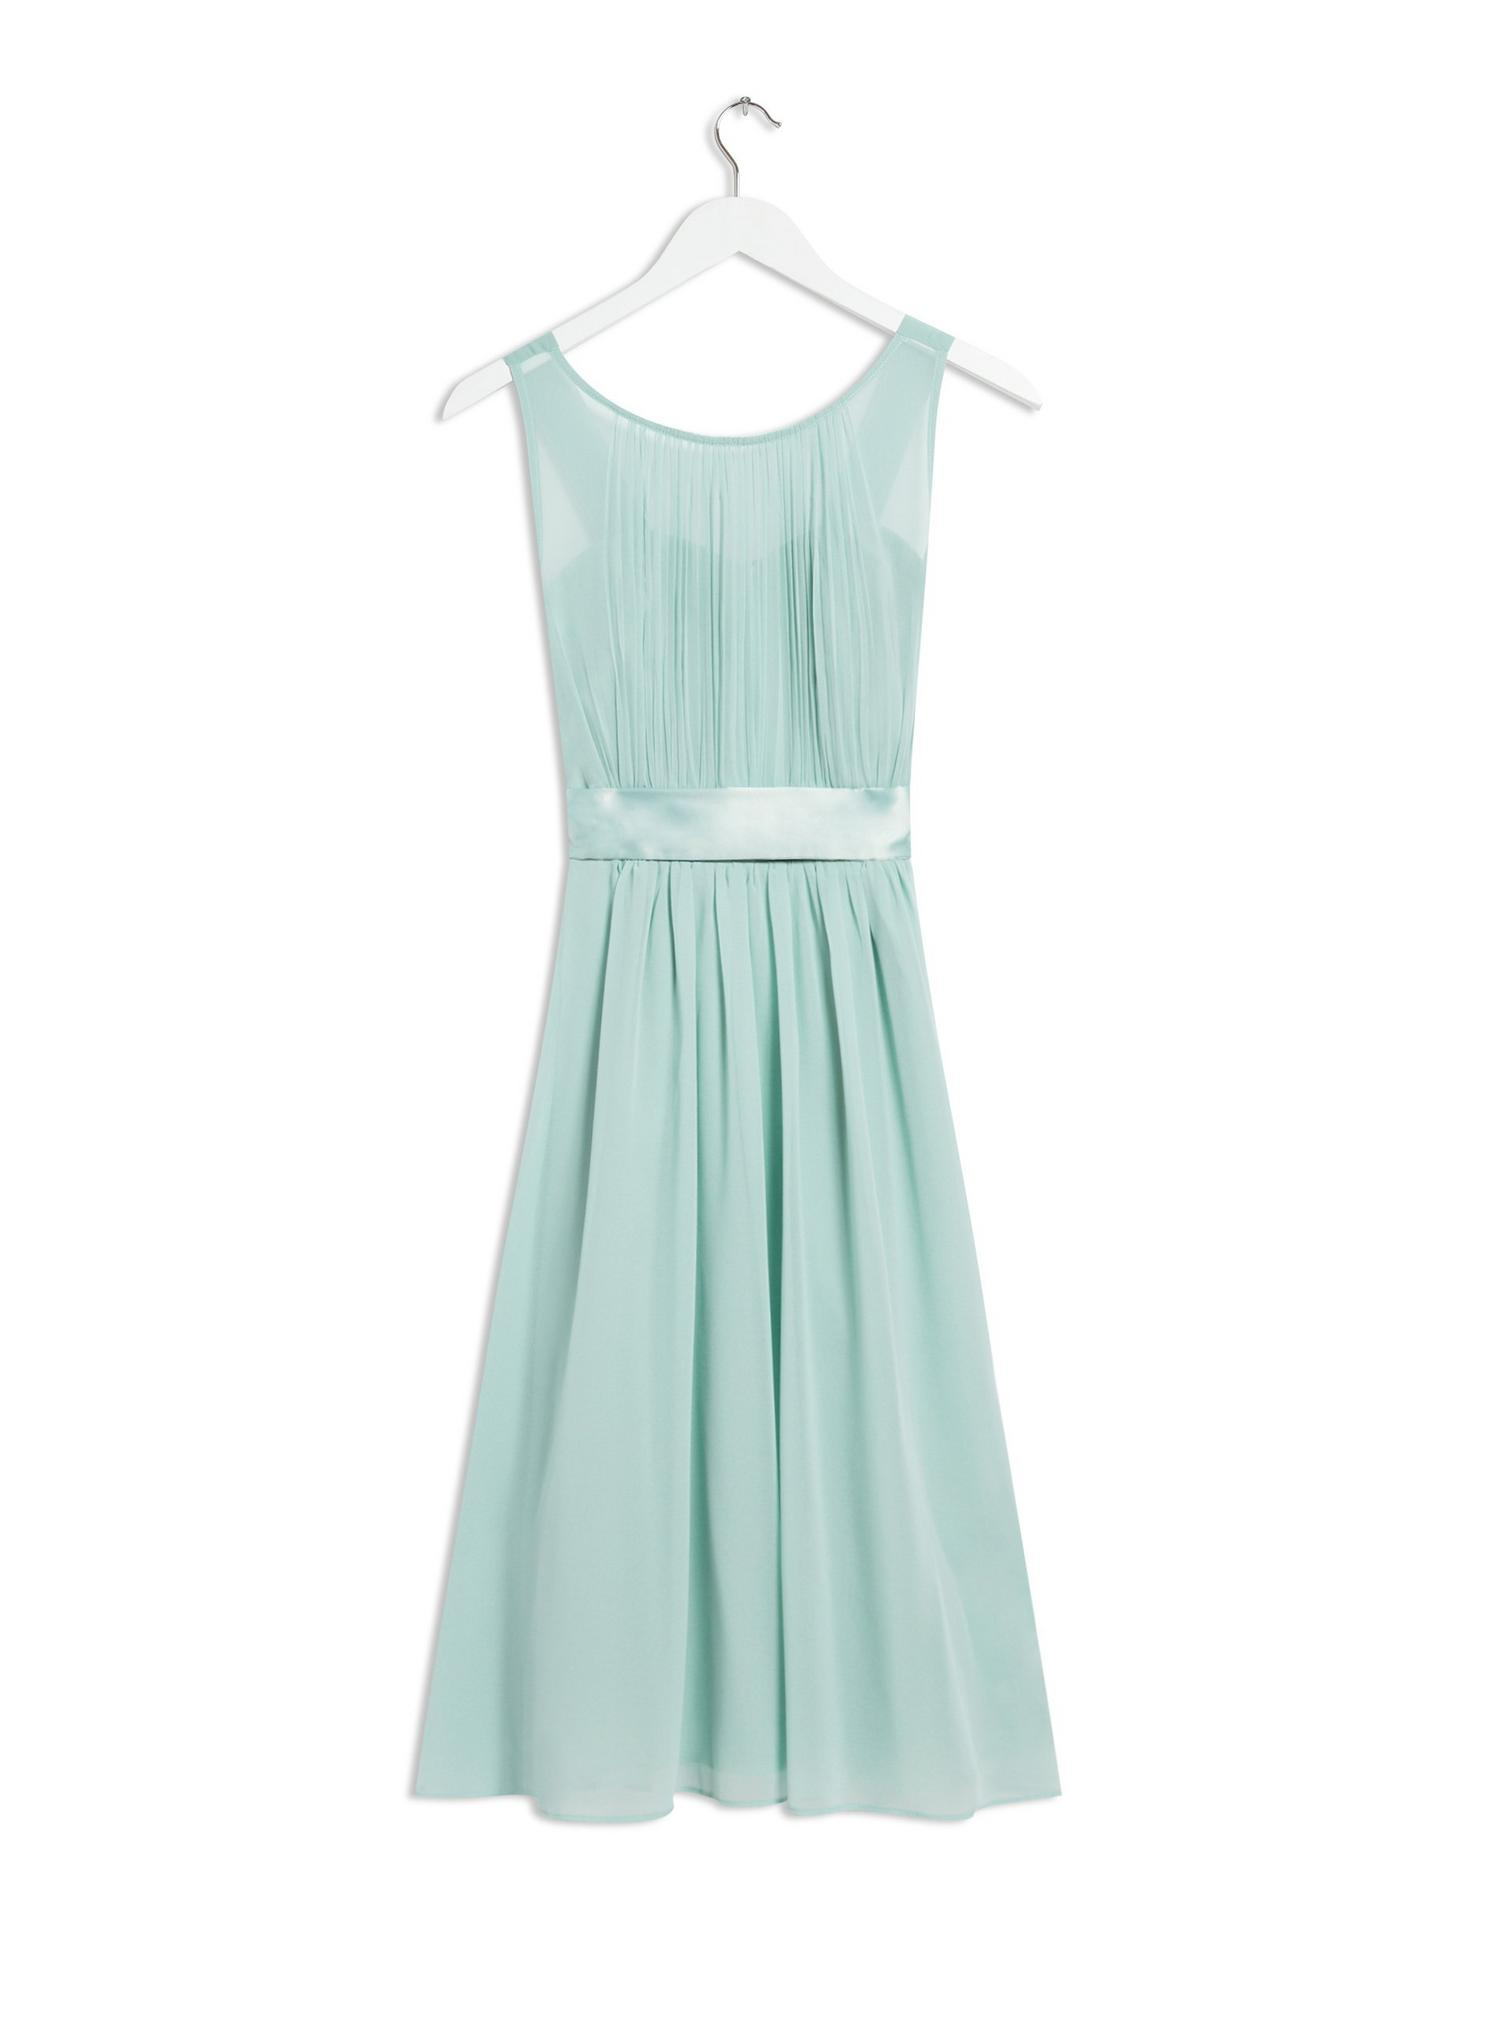 130 Green Bethany Bridesmaid Midi Dress image number 1